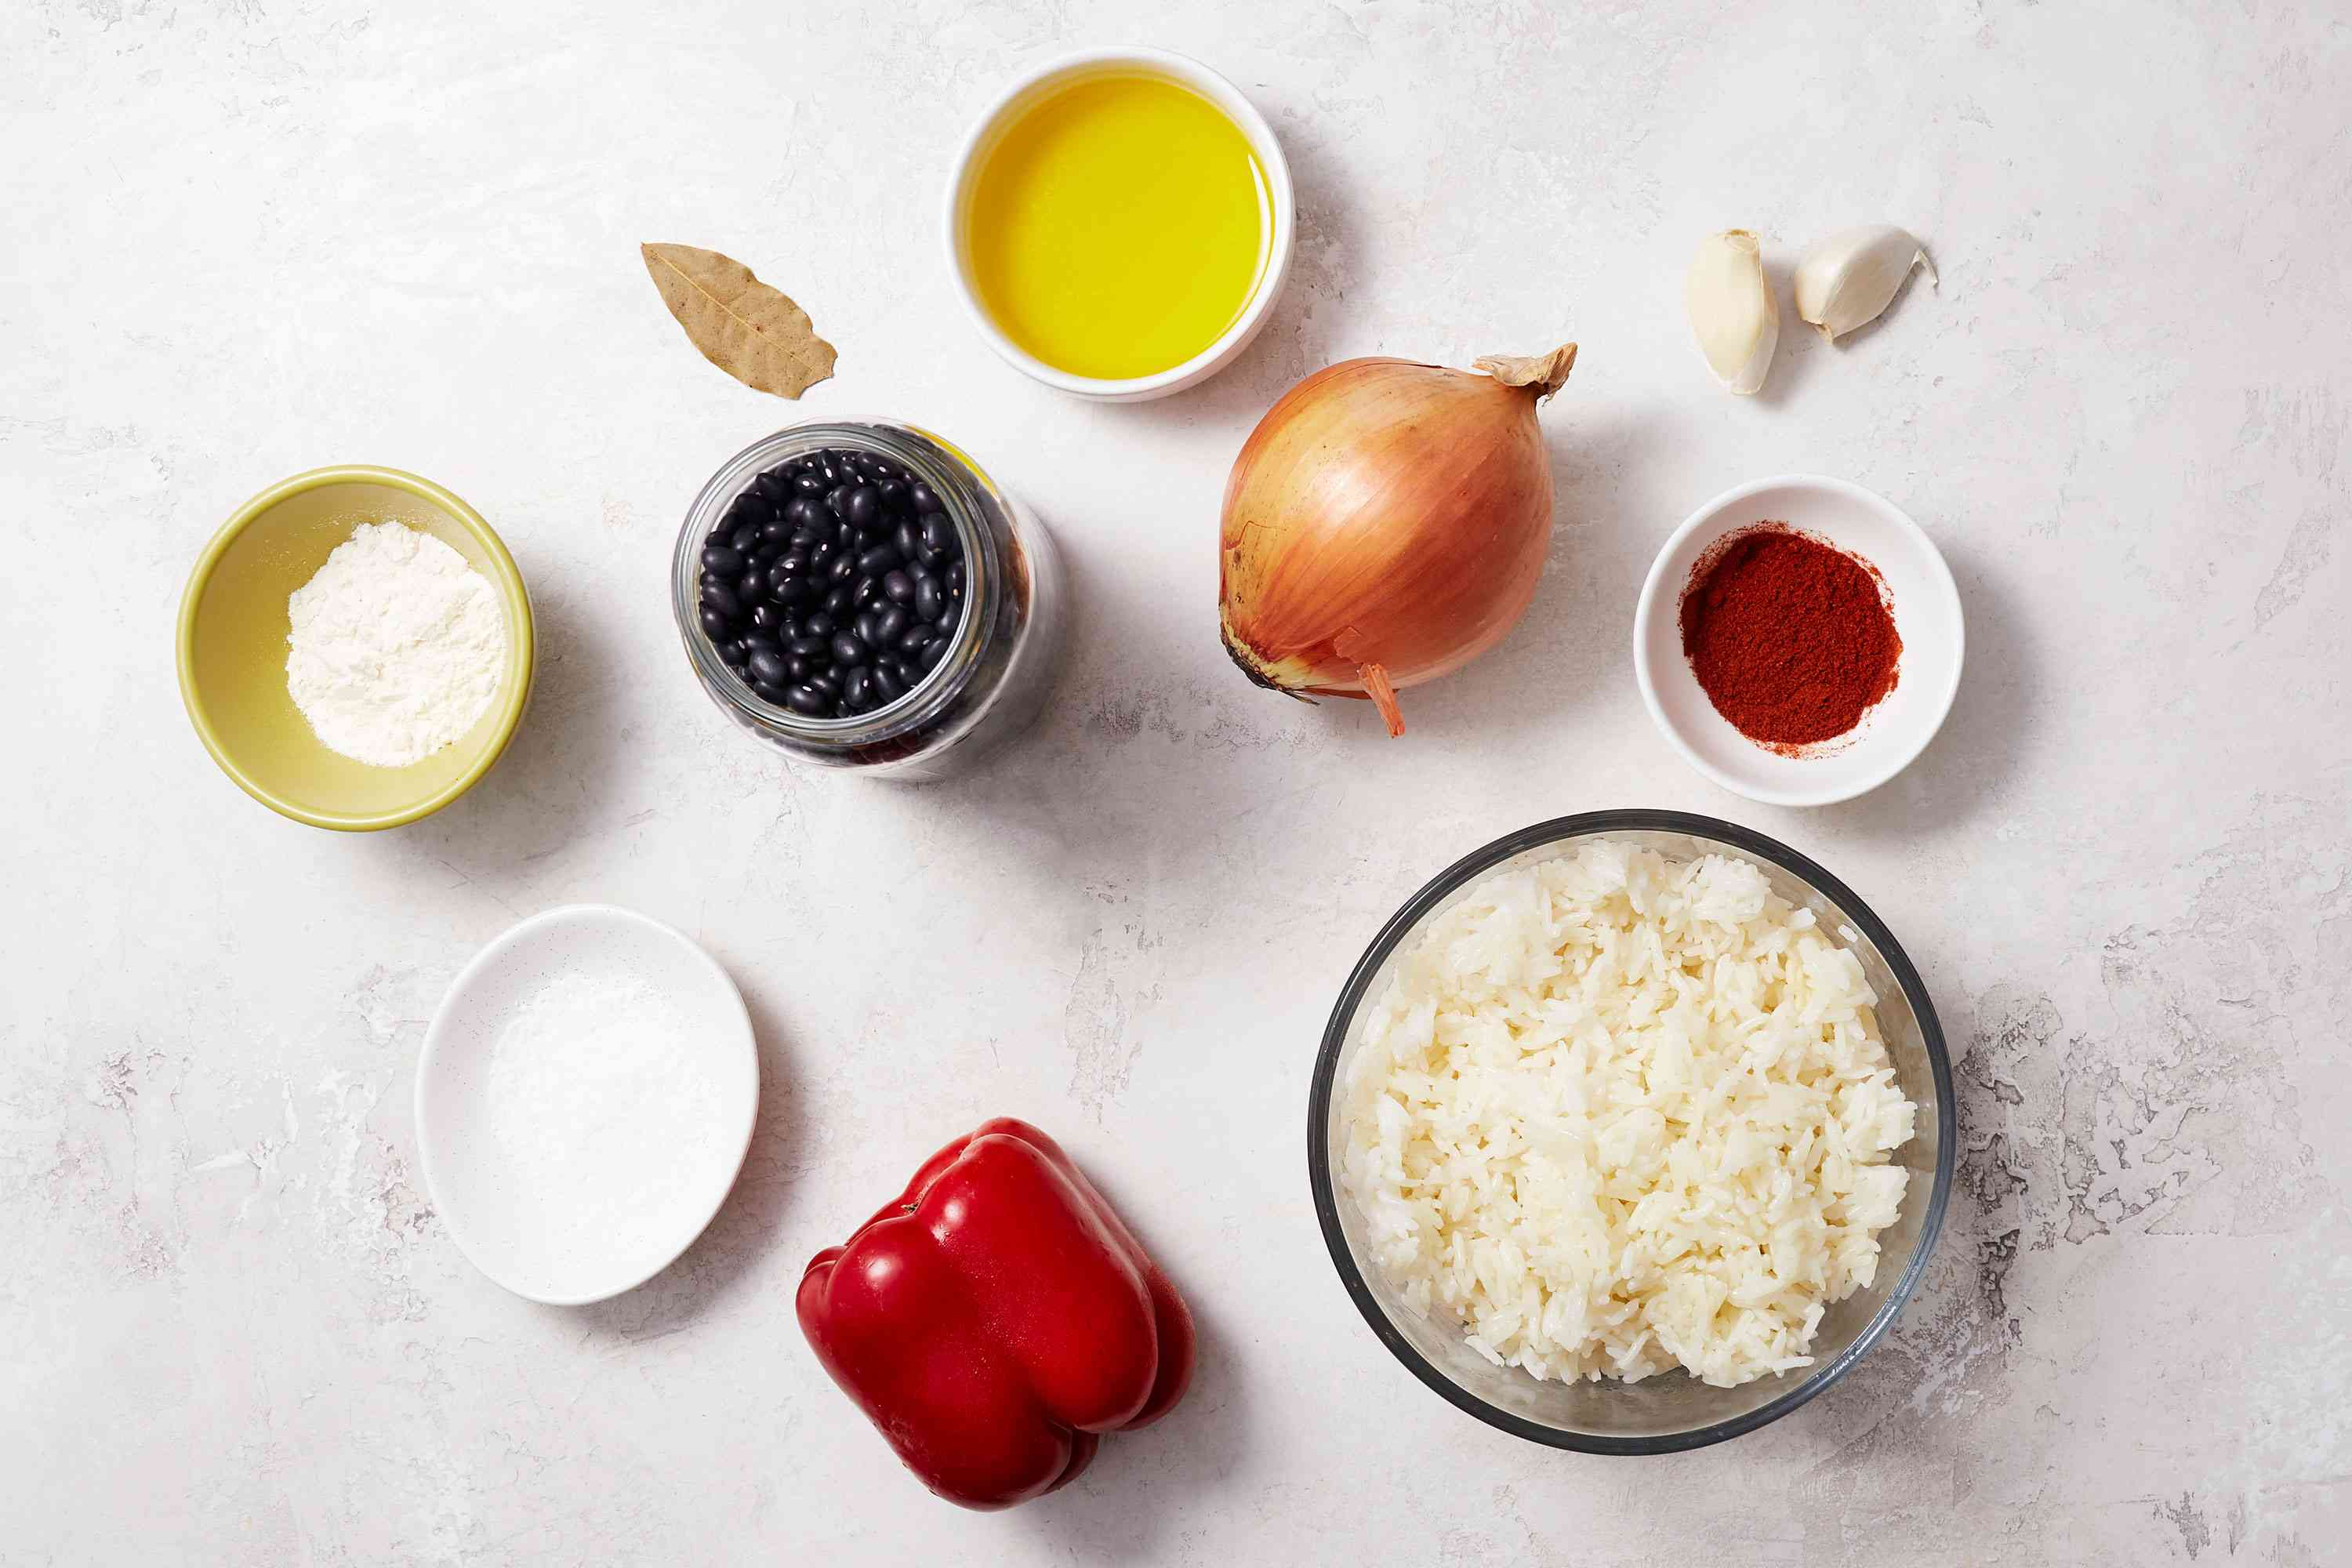 Spanish Beans and Rice (Alubias Con Arroz) ingredients